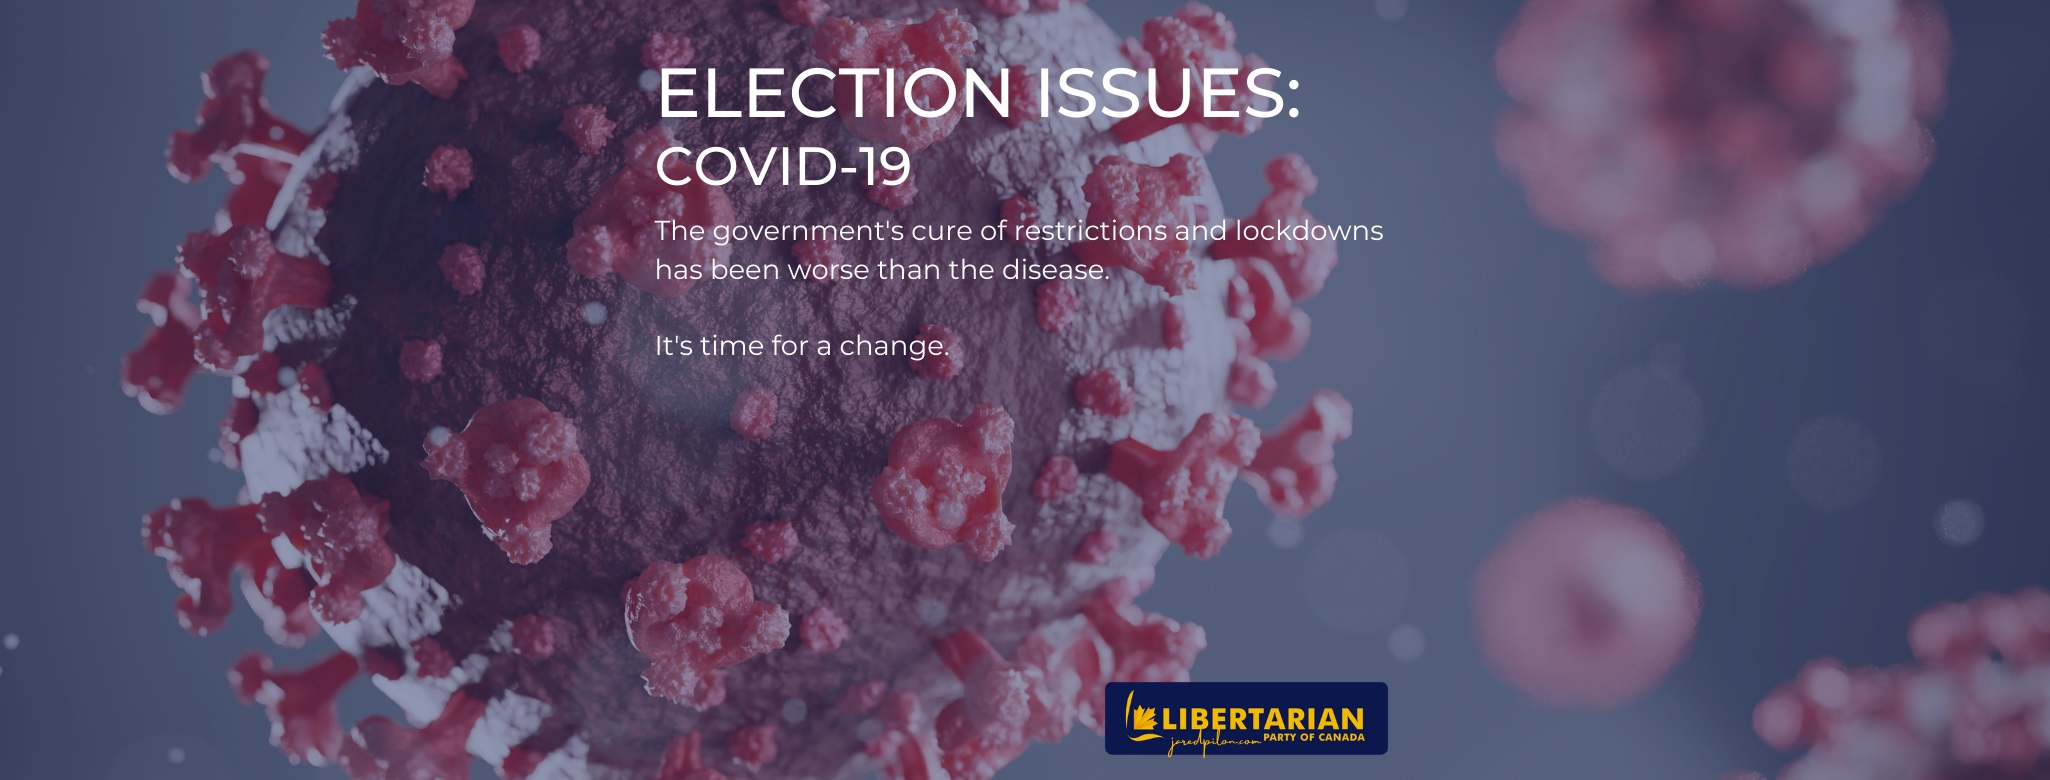 2021 Election Issues: COVID-19